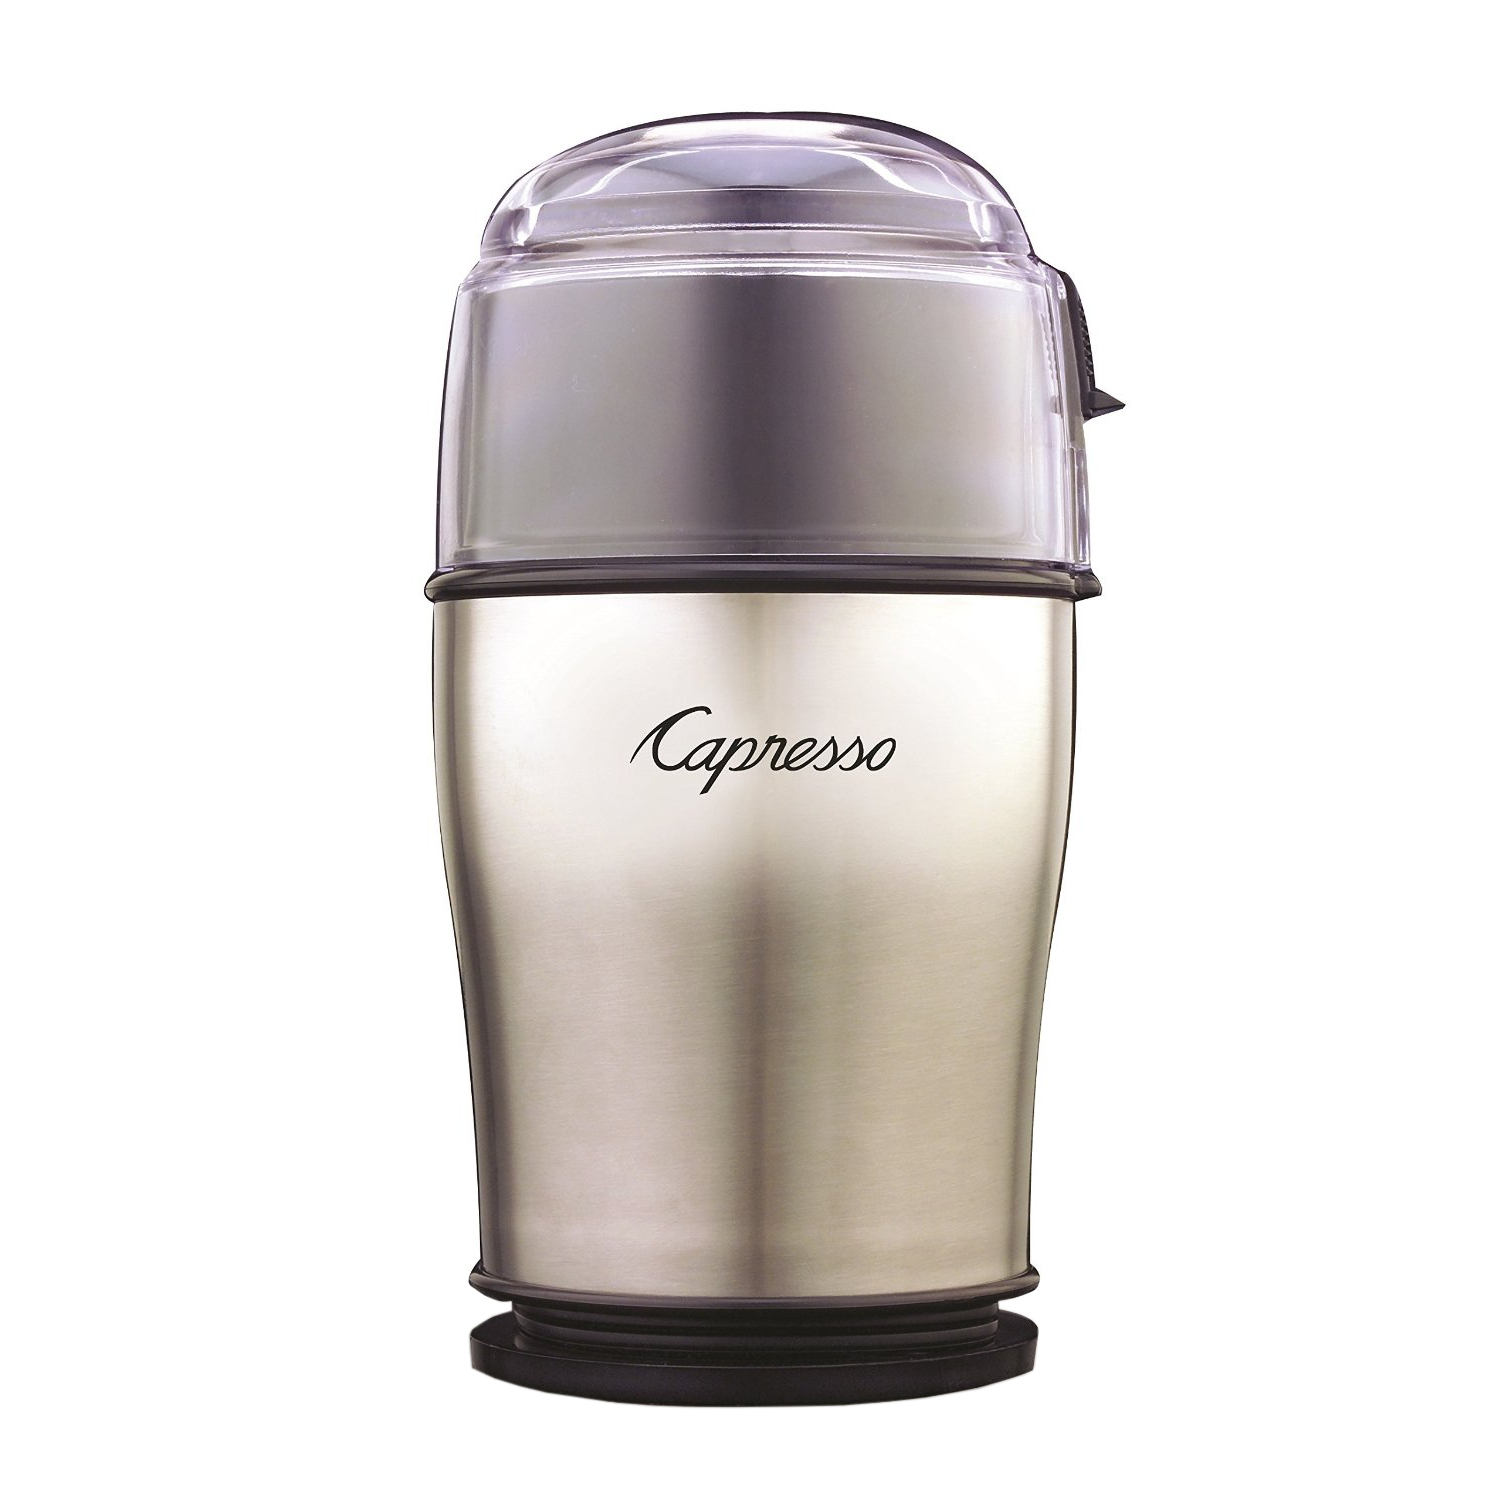 Capresso Stainless Steel Cool Grind Pro Coffee Grinder